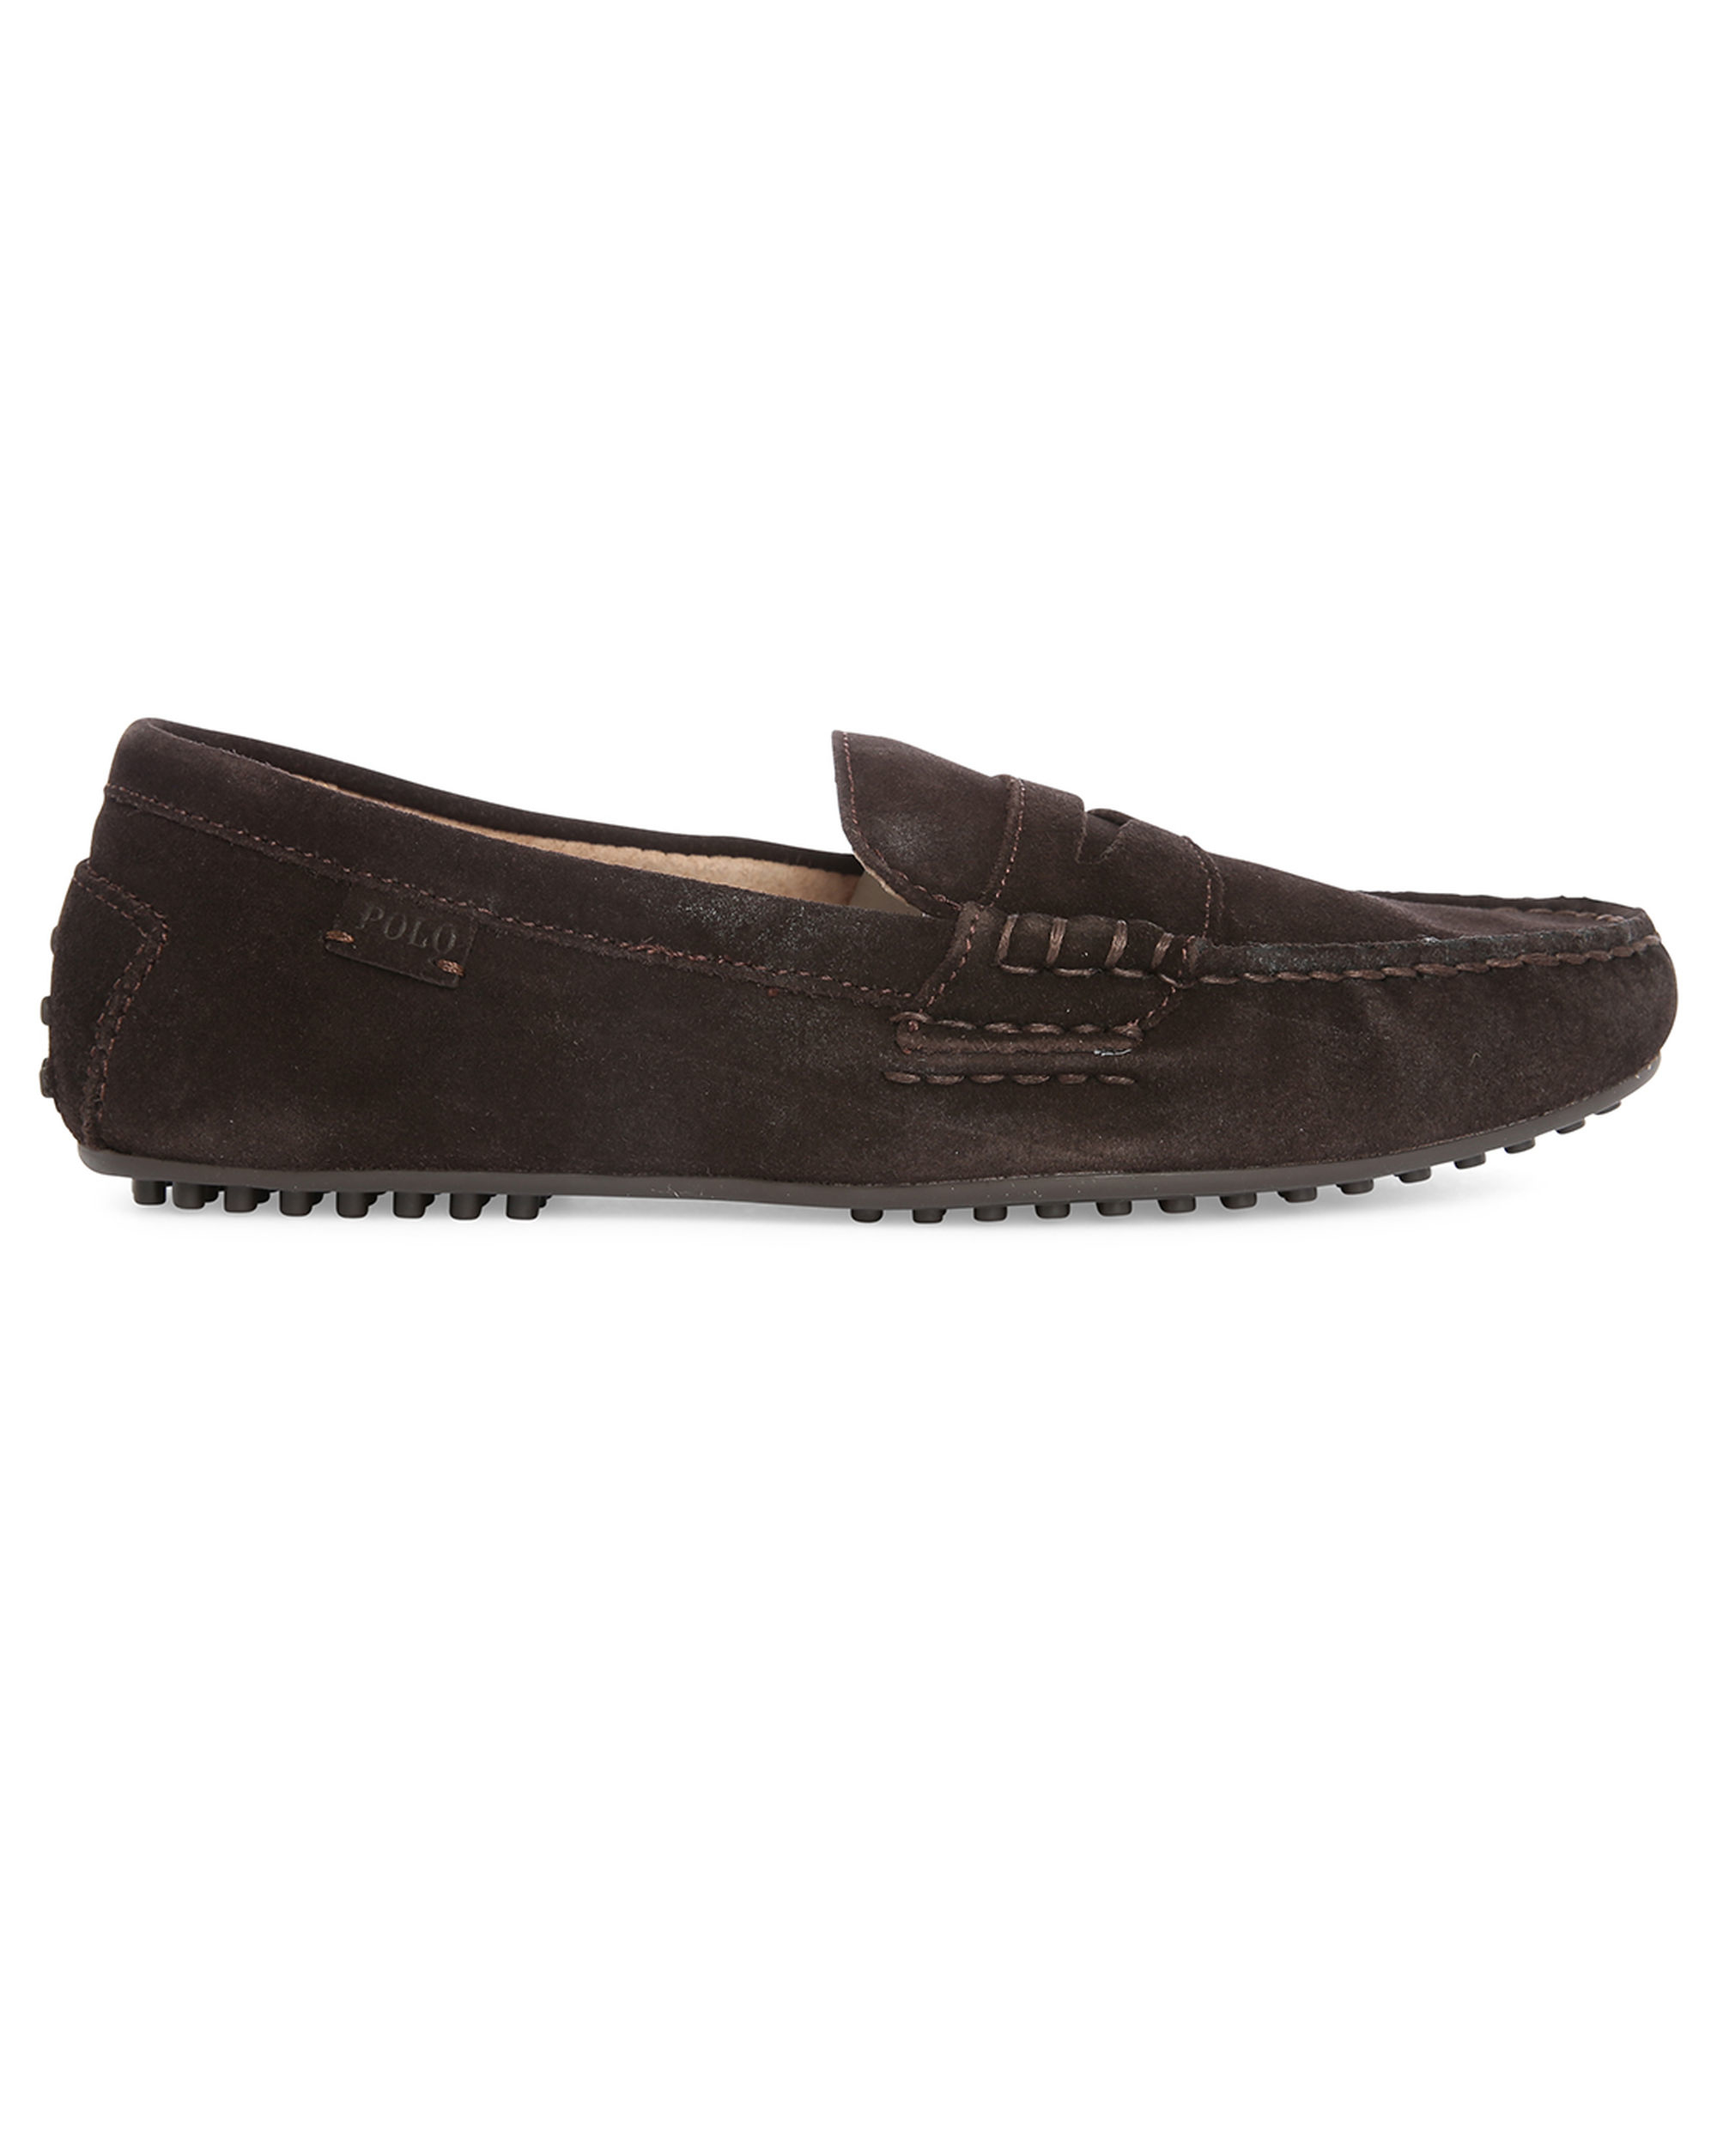 Polo ralph lauren Brown Wes Suede Slip-on in Brown for Men ...